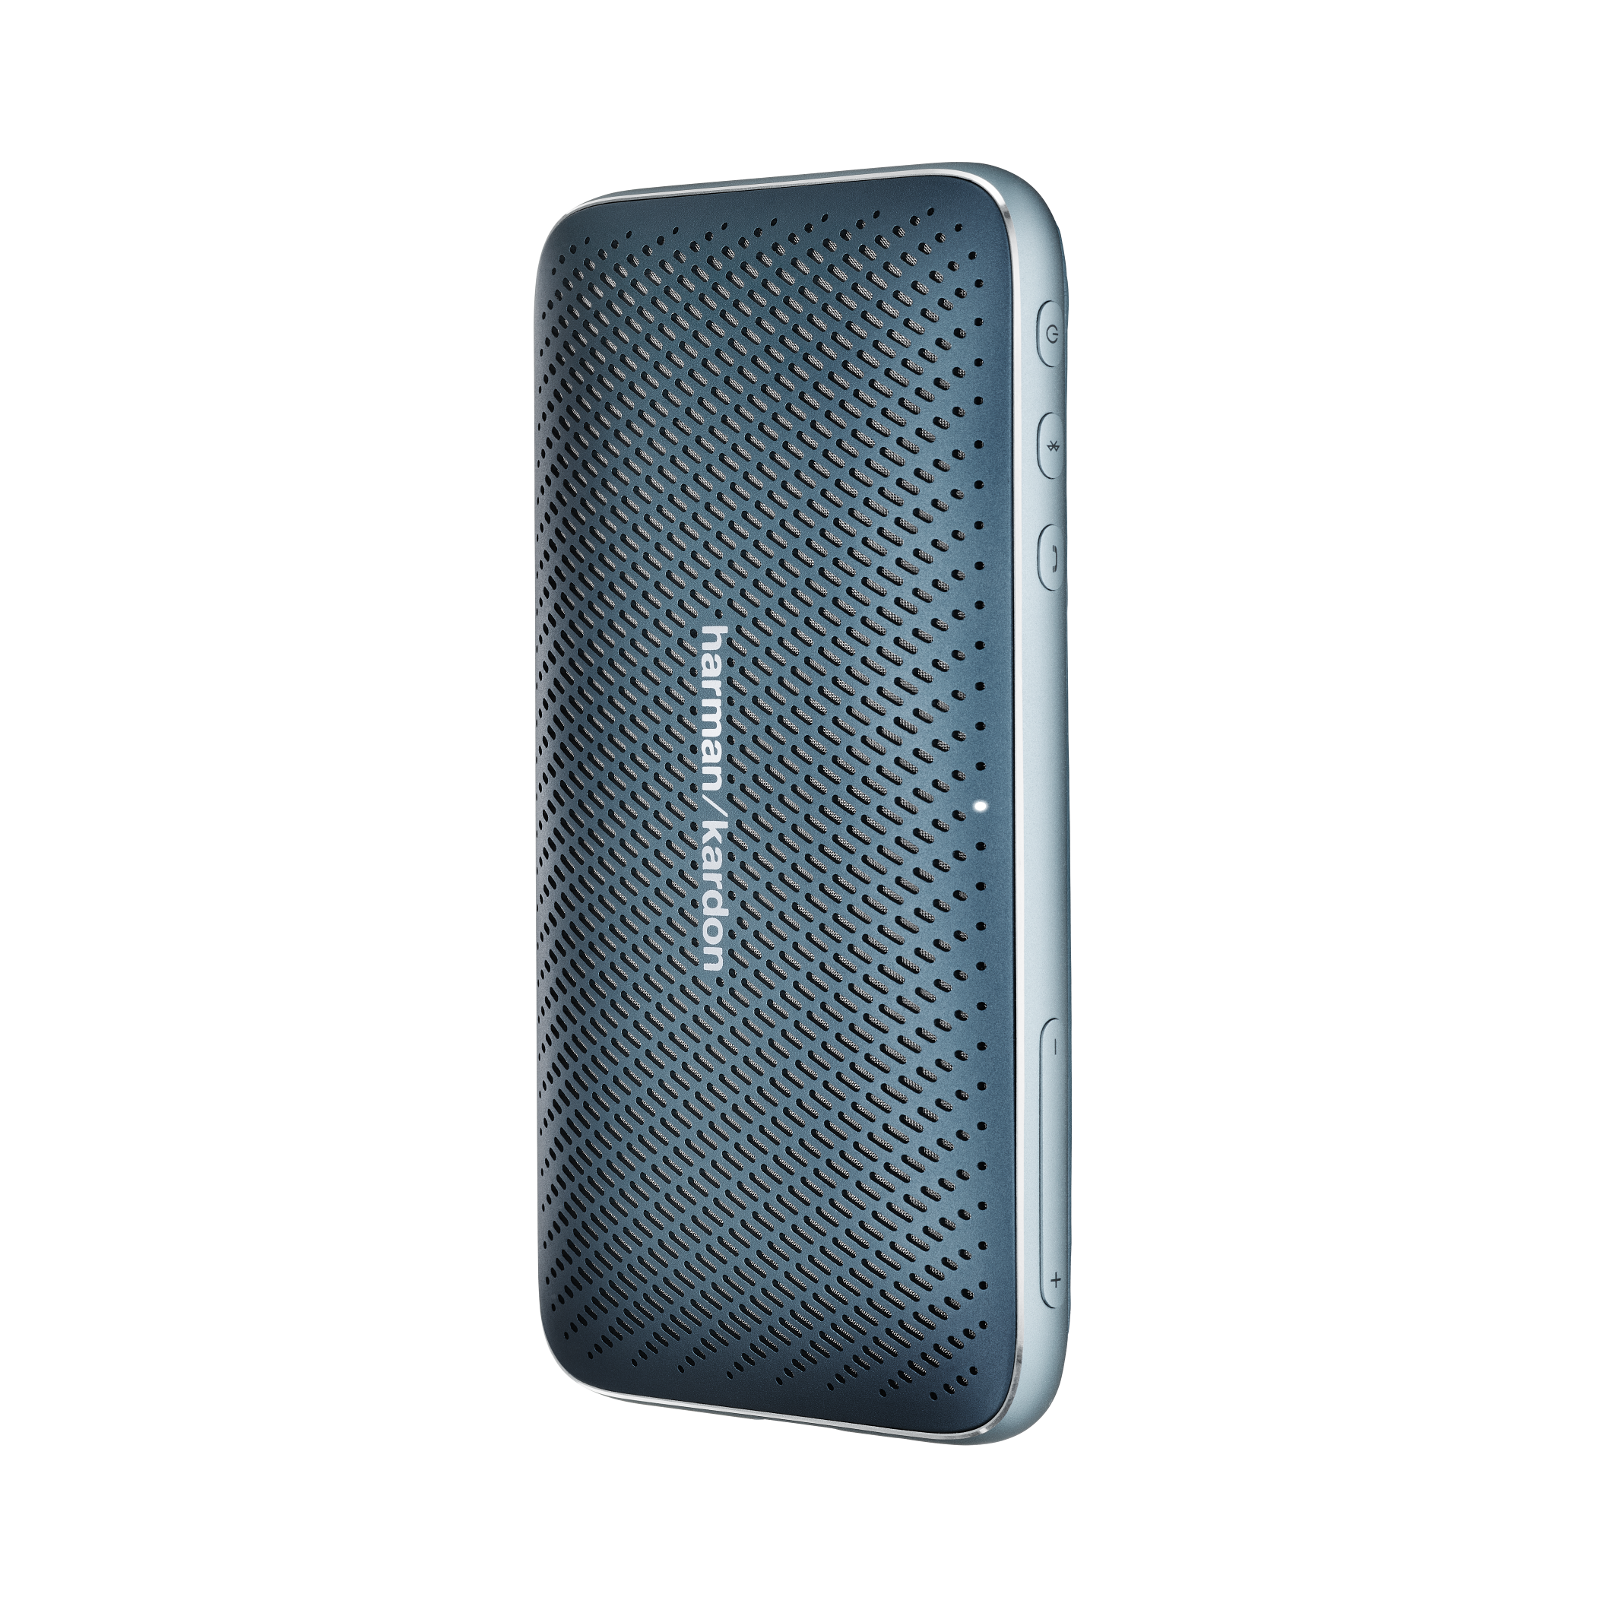 Harman Kardon Esquire Mini 2 - Blue - Ultra-slim and portable premium Bluetooth Speaker - Detailshot 2